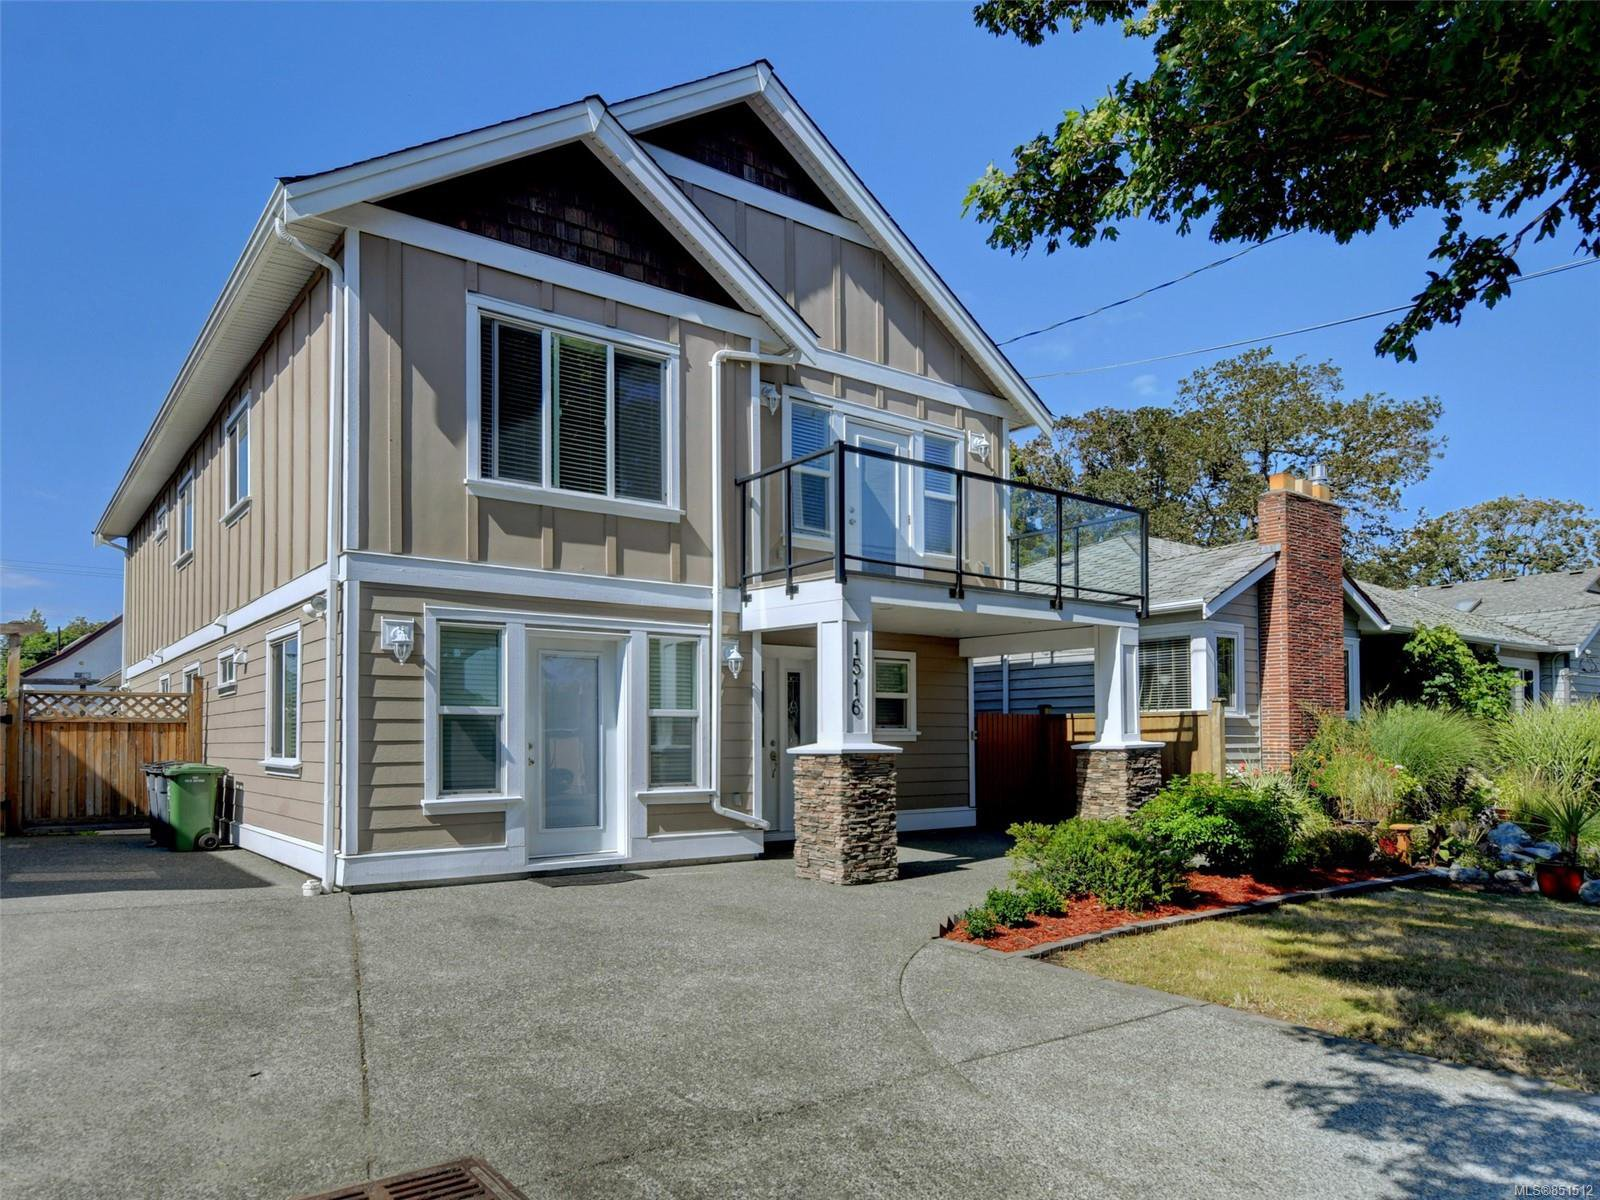 Main Photo: 1516 Westall Ave in : Vi Oaklands House for sale (Victoria)  : MLS®# 851512